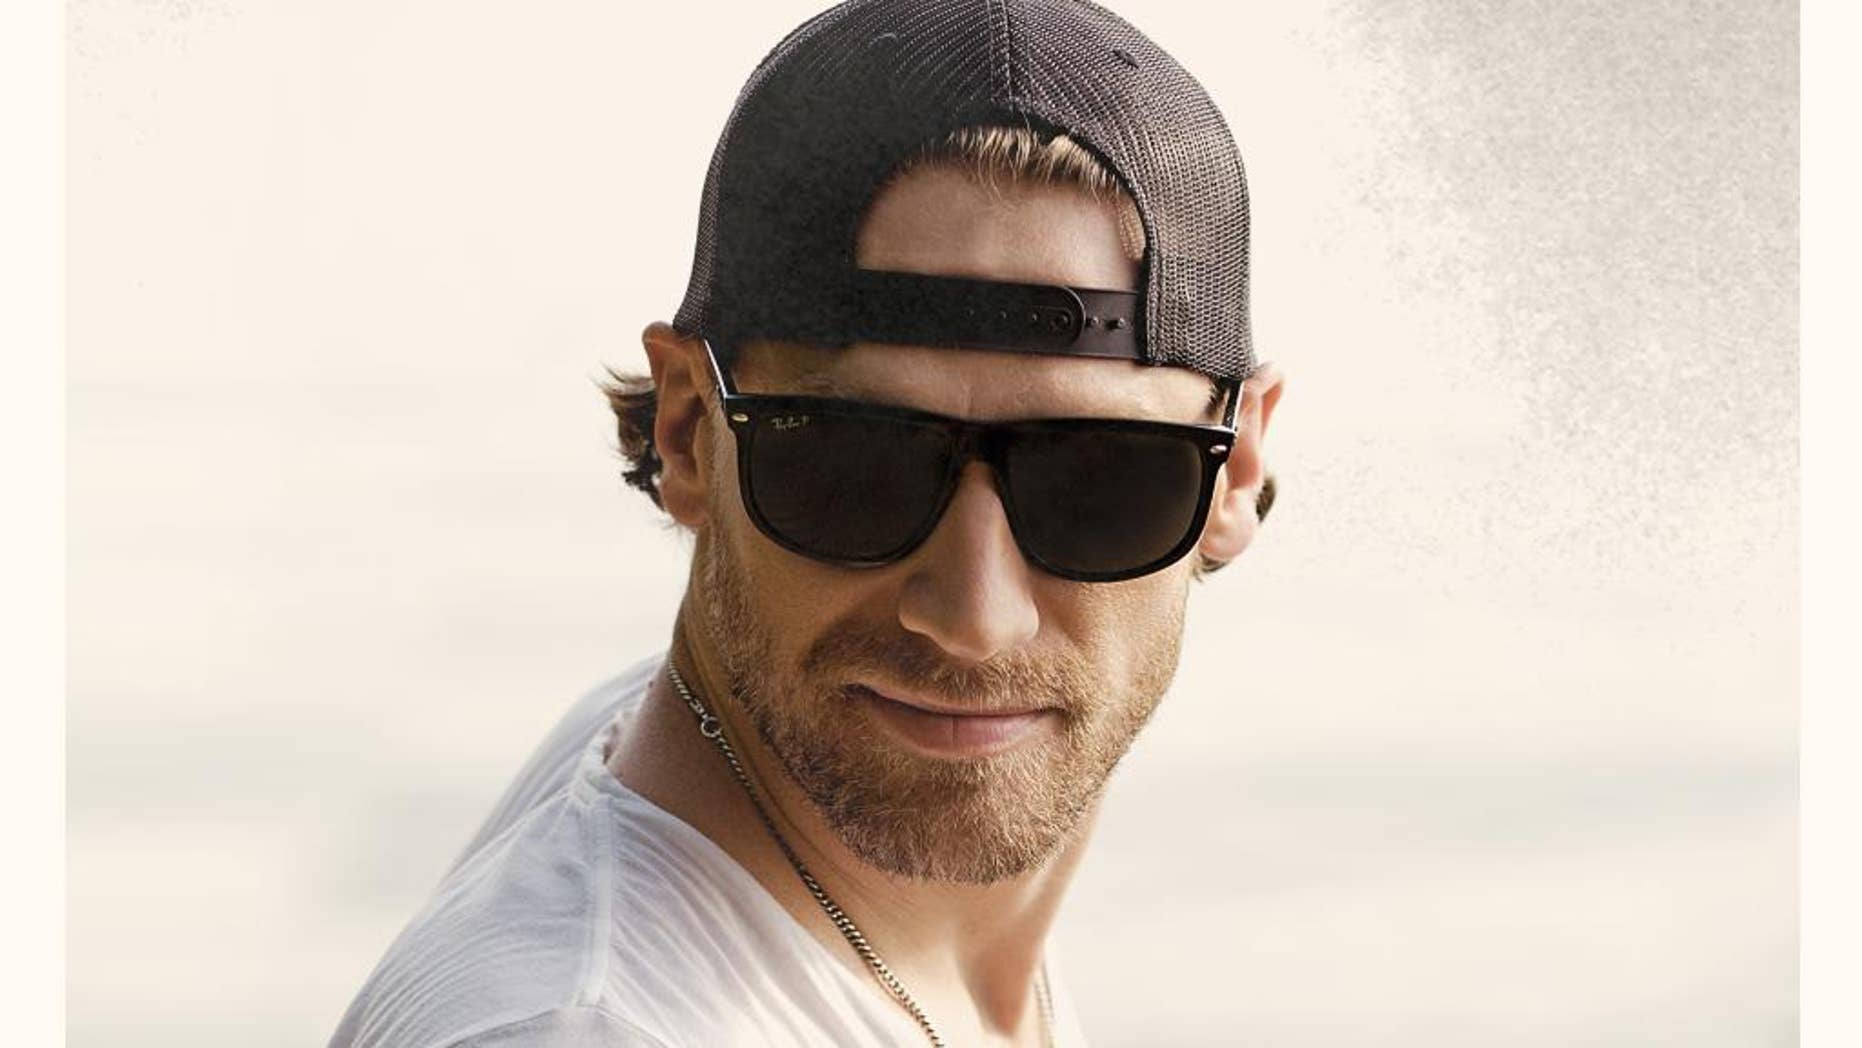 """This CD cover image released by Columbia Nashville/Dack Janiels Records shows """"Ignite the Night,"""" by Chase Rice. (AP Photo/Columbia Nashville/Dack Janiels Records)"""